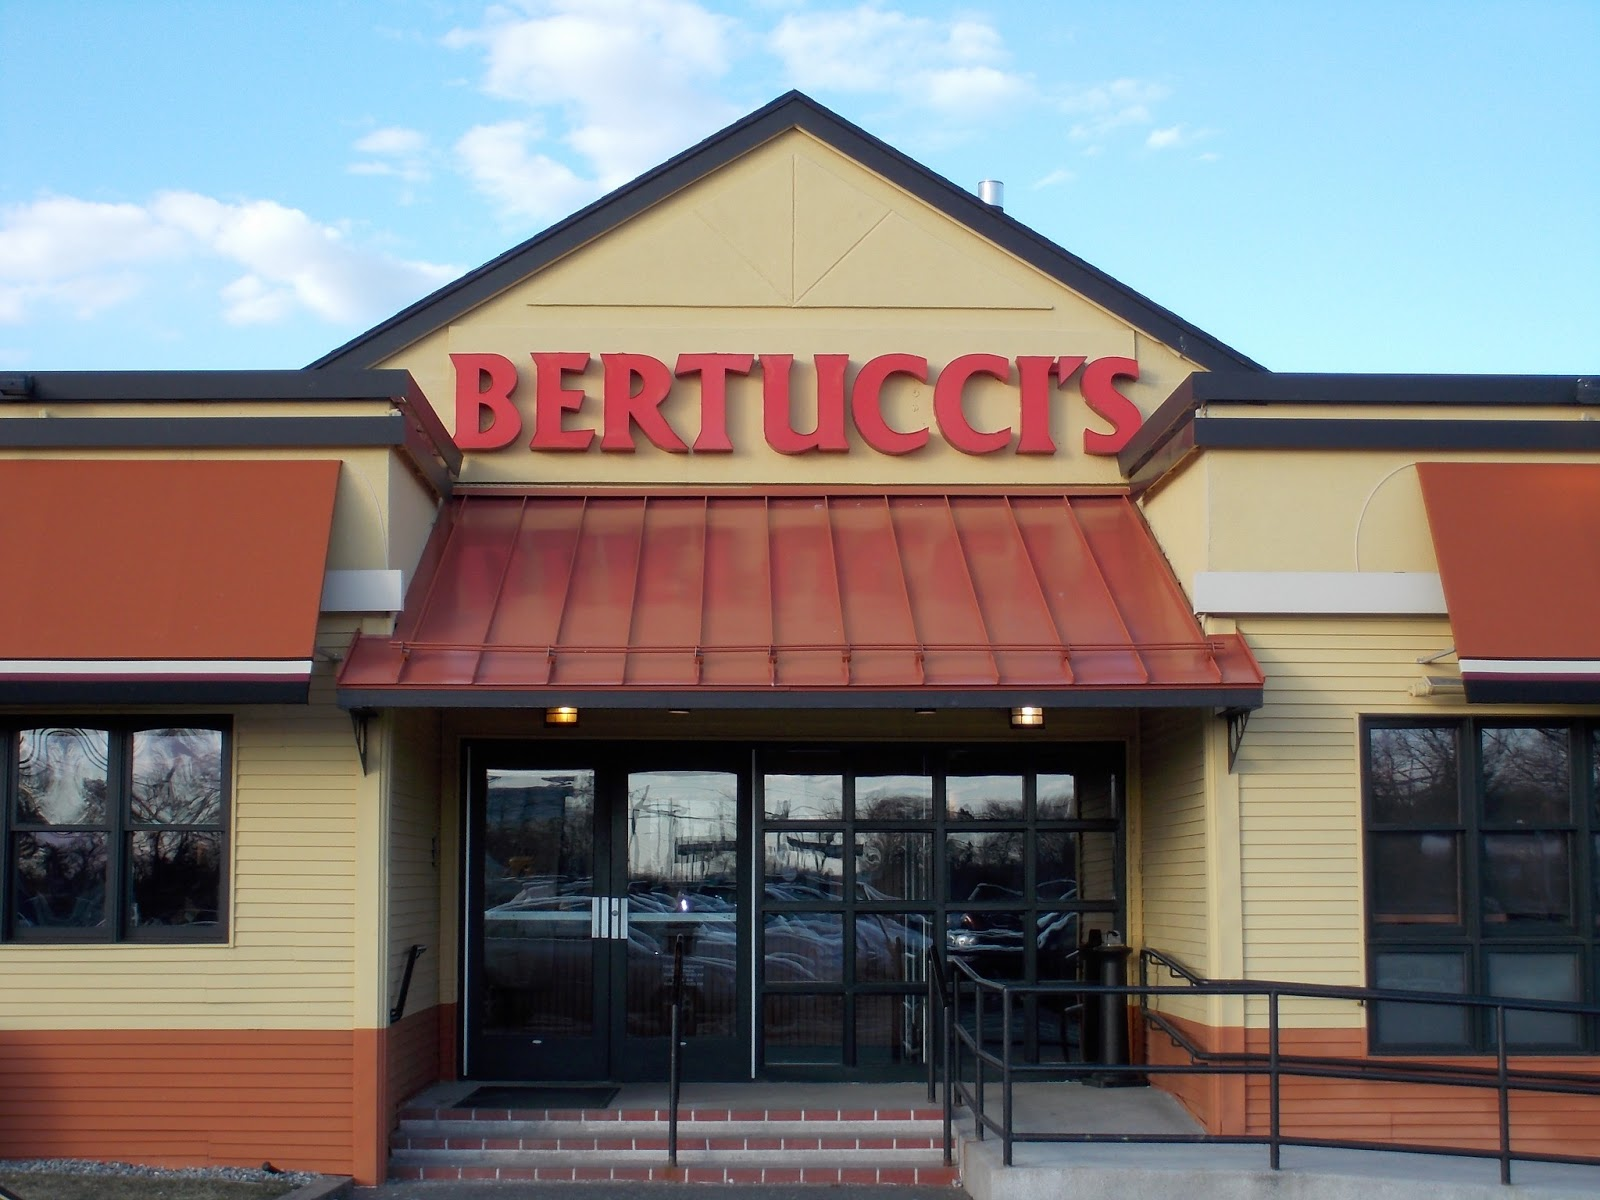 Our Final Stop Is At Bertucci S Italian Restaurant 15 Newbury St West Peabody Ma Http Www Bertuccis Index Php